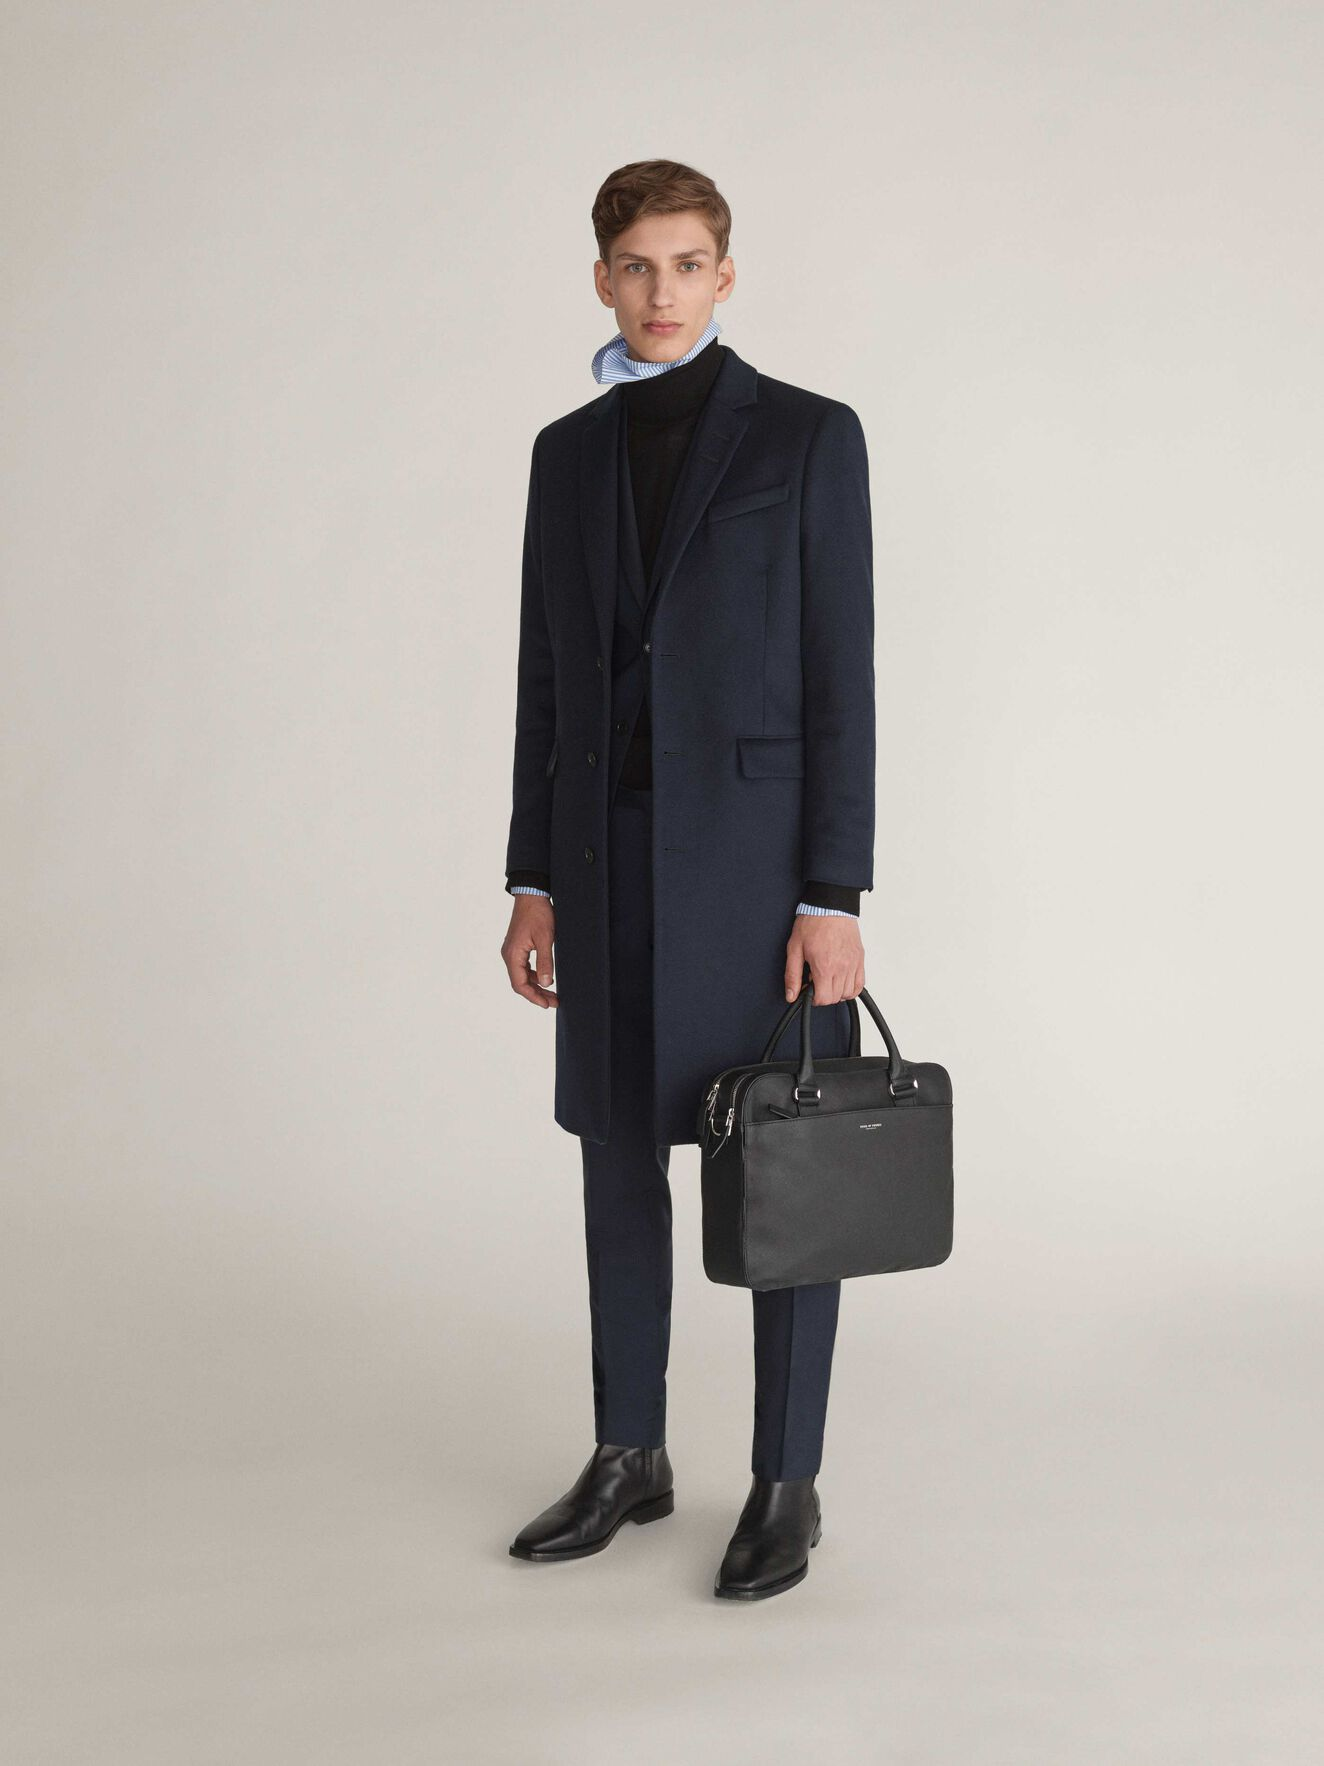 Alva Briefcase in Black from Tiger of Sweden